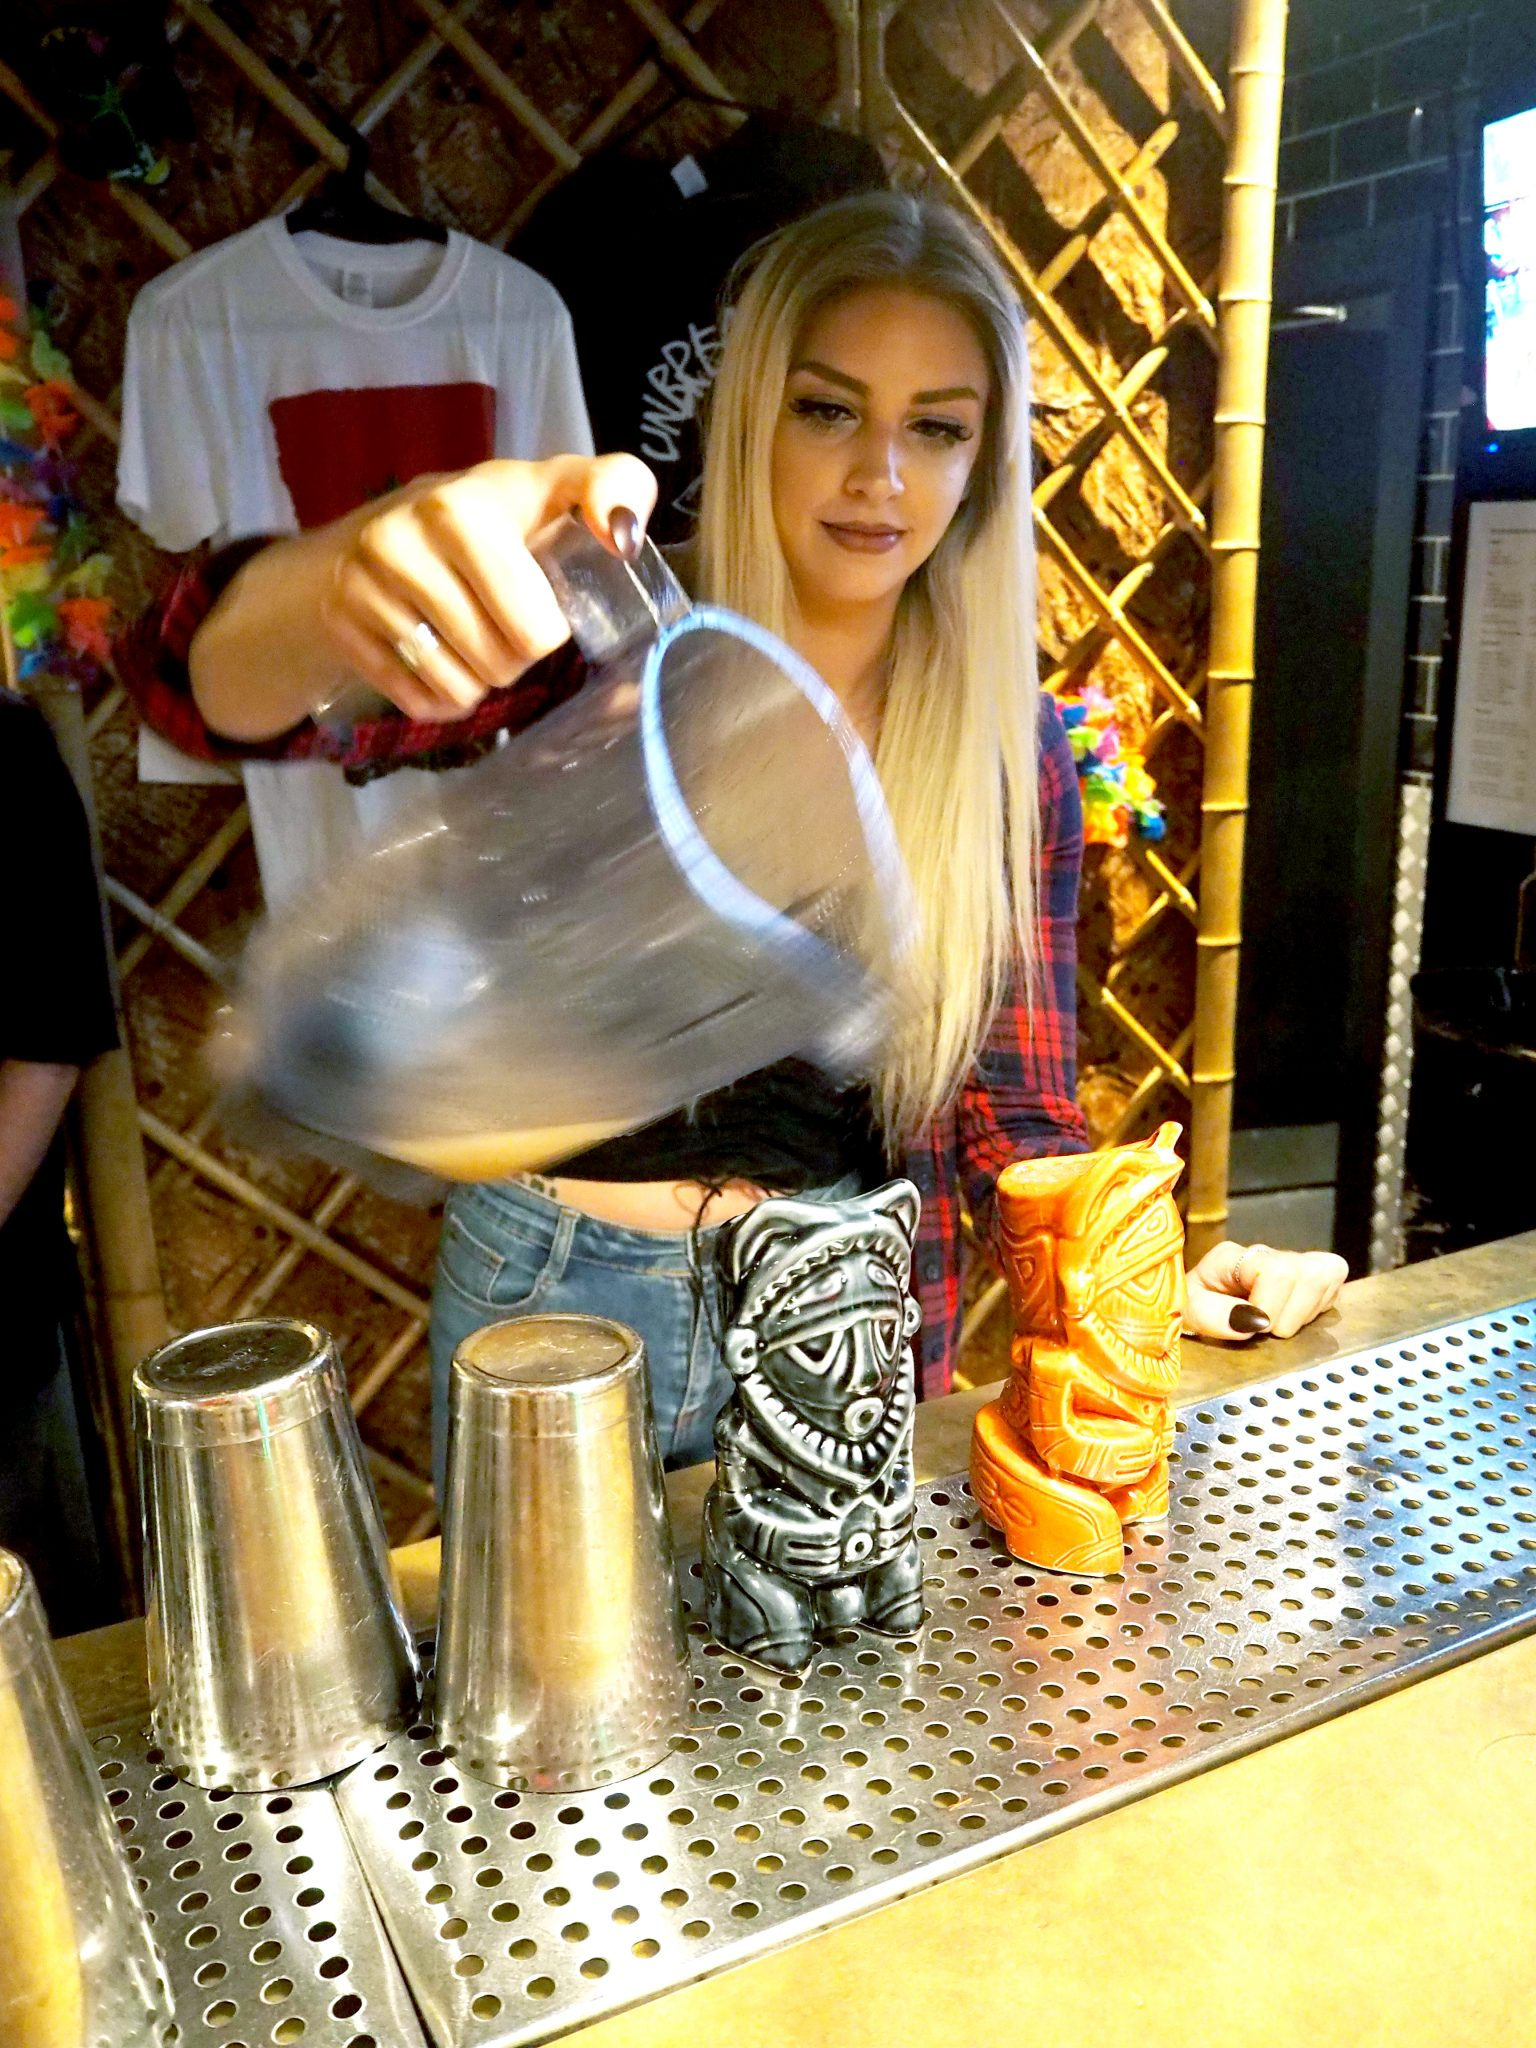 Laura Kate Lucas - Manchester Fashion, Food and Fitness - Lifestyle Blogger | Liar's Club Cocktail Bar Masterclass and New Menu